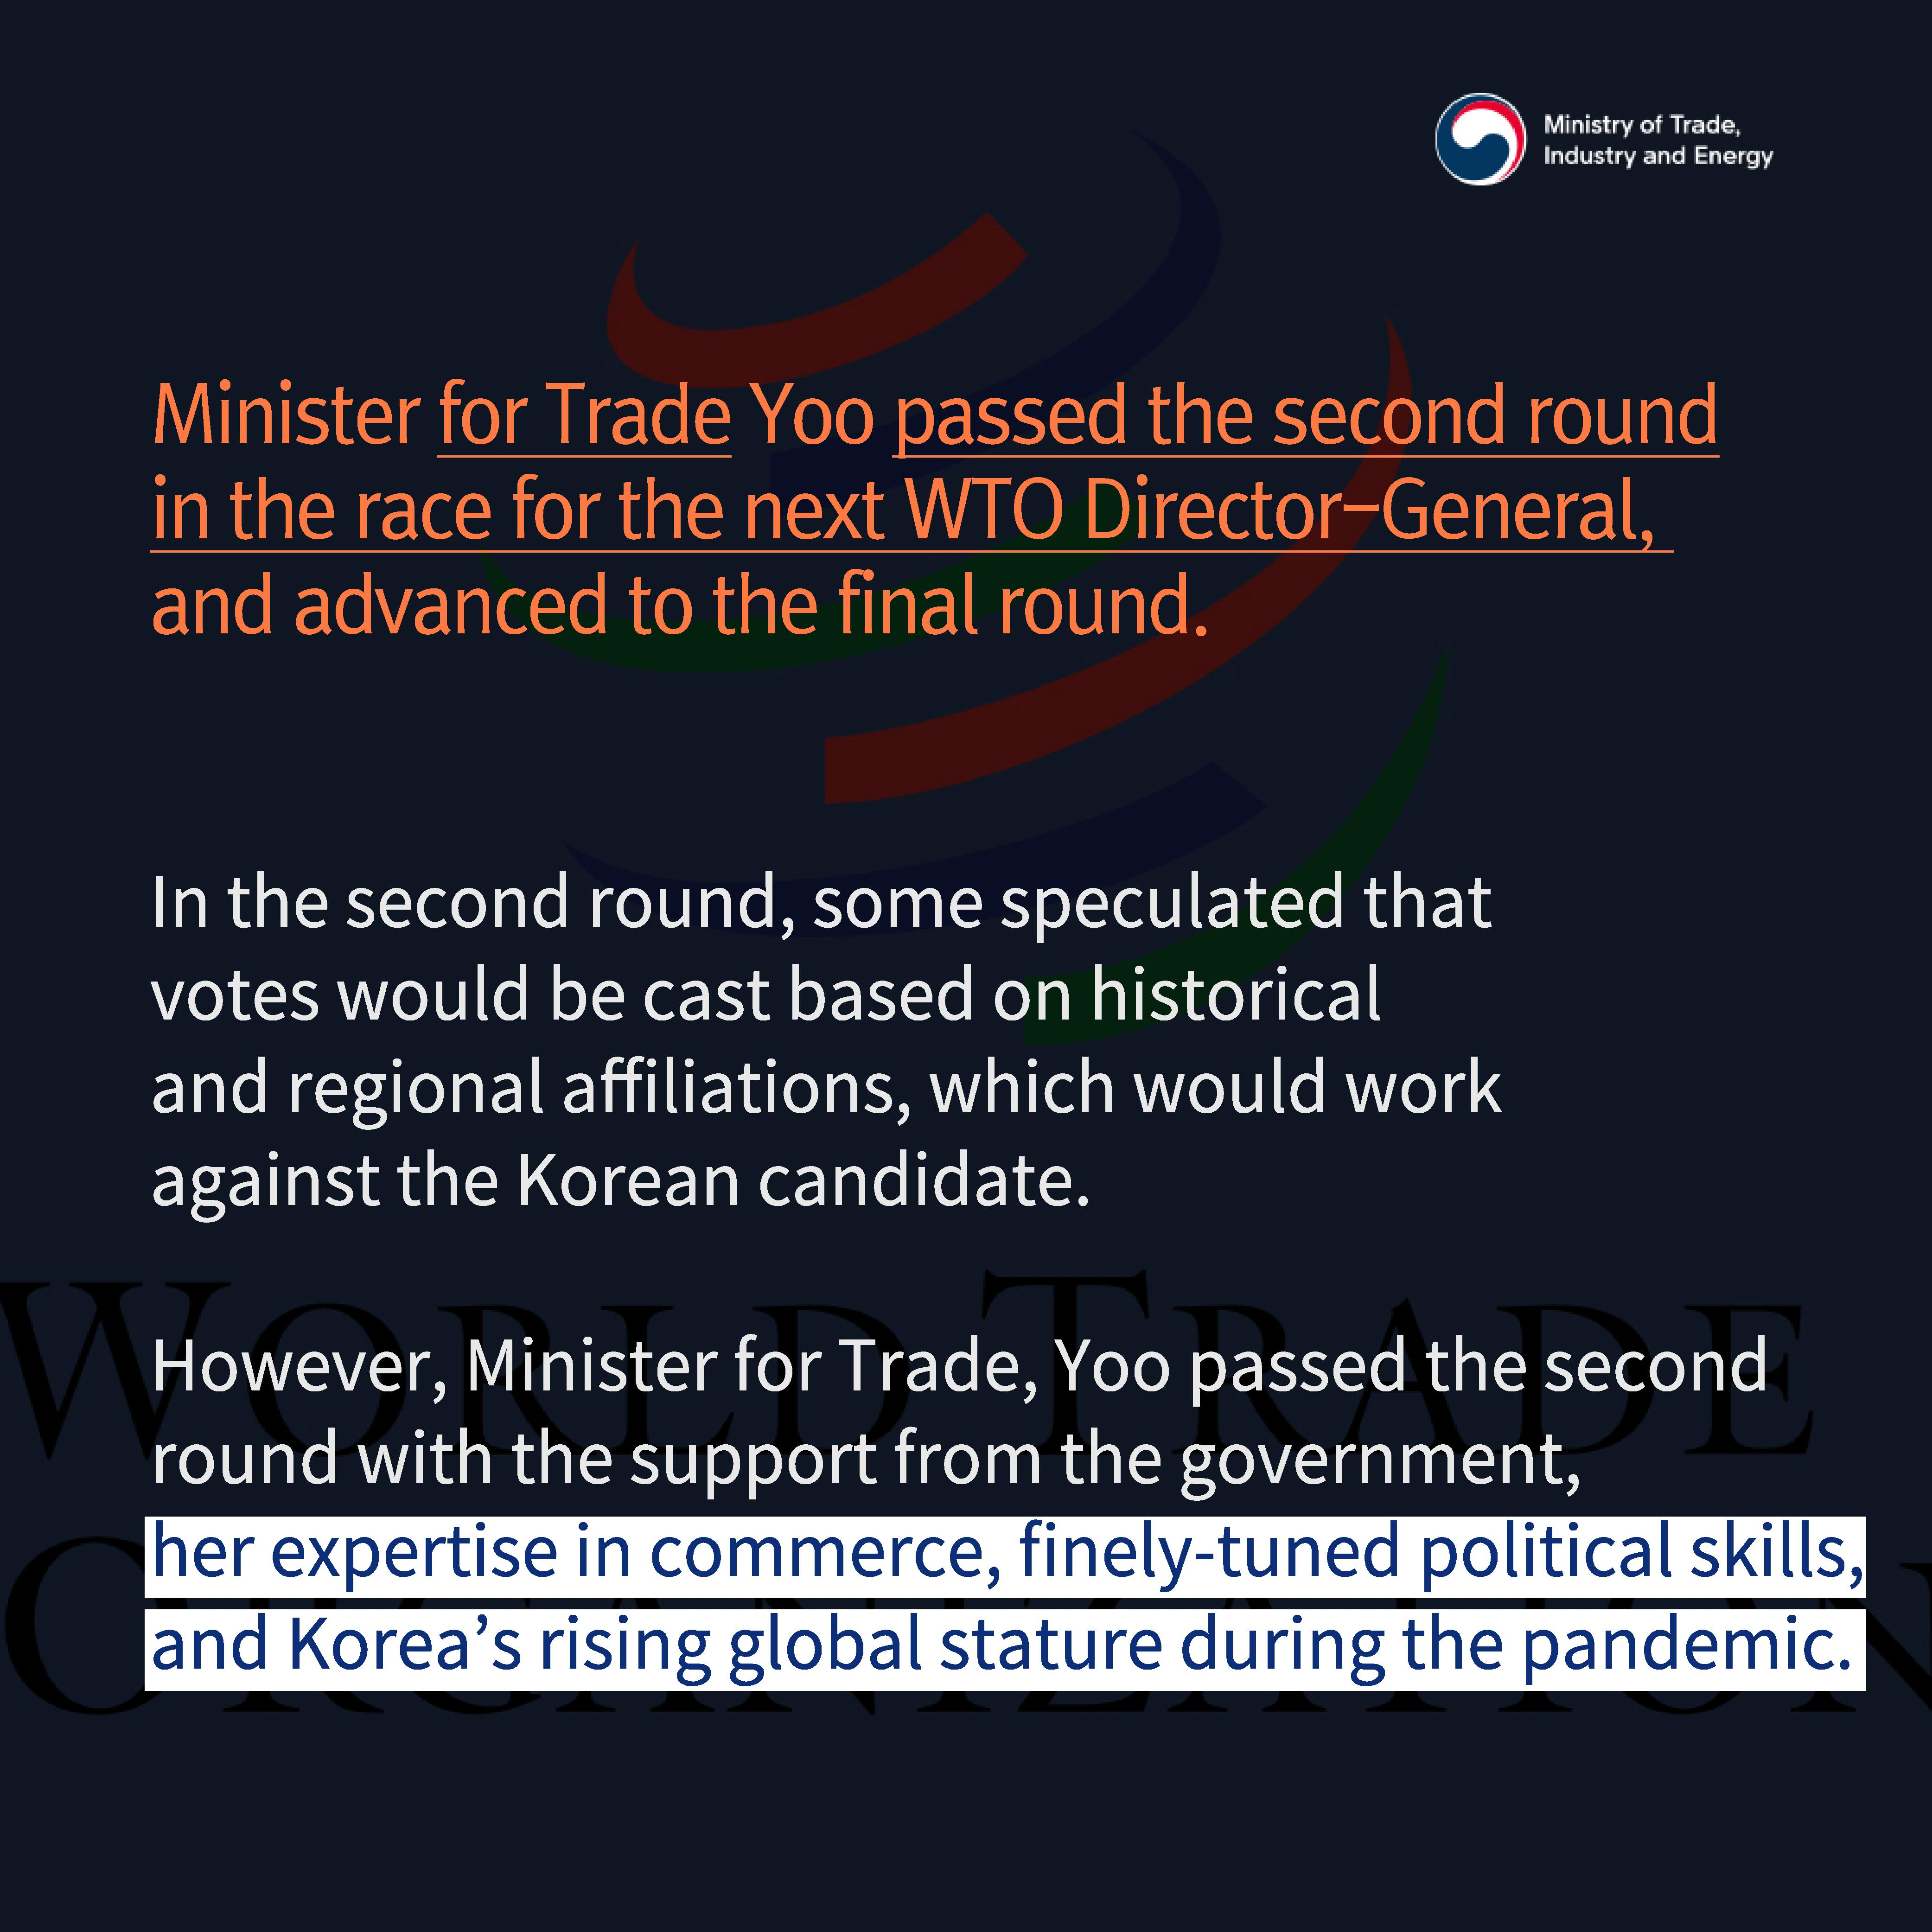 Trade Minister Yoo Myung-hee advances to the final round in the race for the next WTO DG Image 1